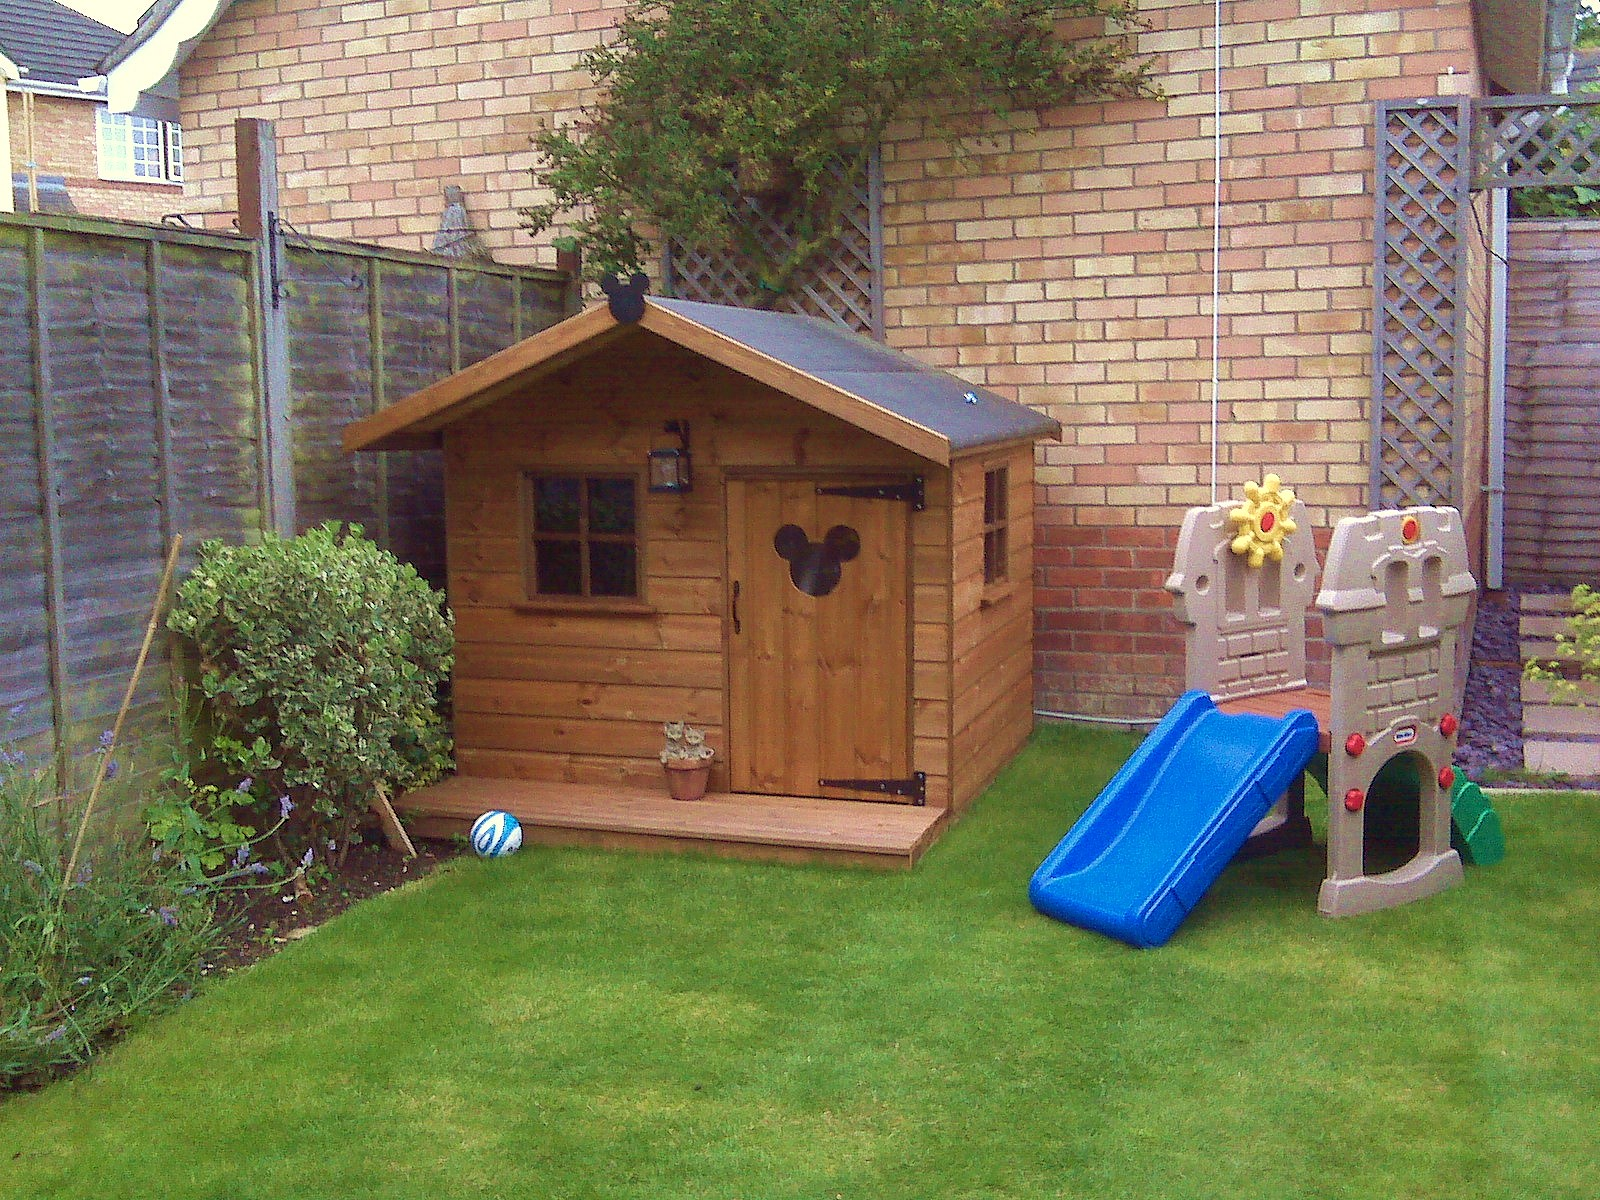 Rileys play house 2